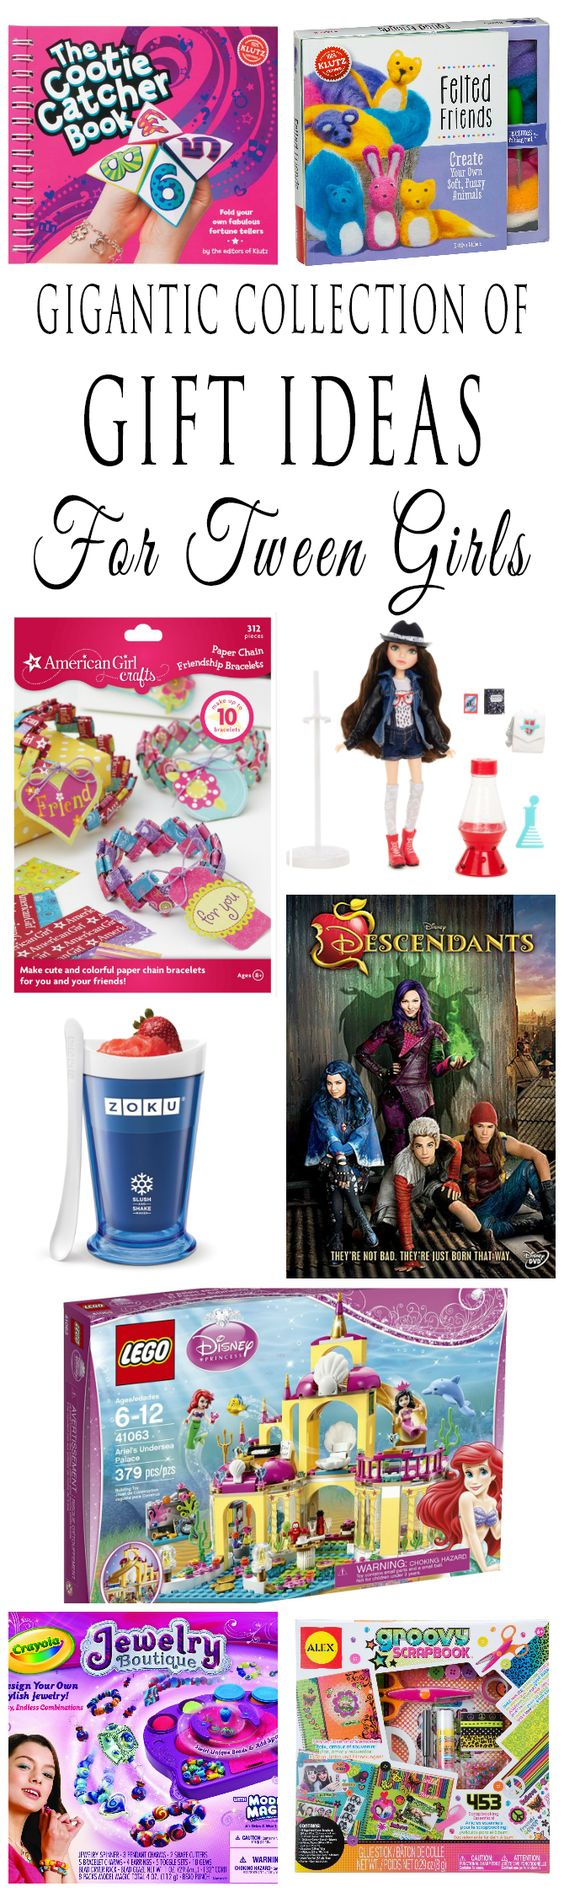 Toys For Tween Girls : Gift ideas for tween girls they will love crafts movies